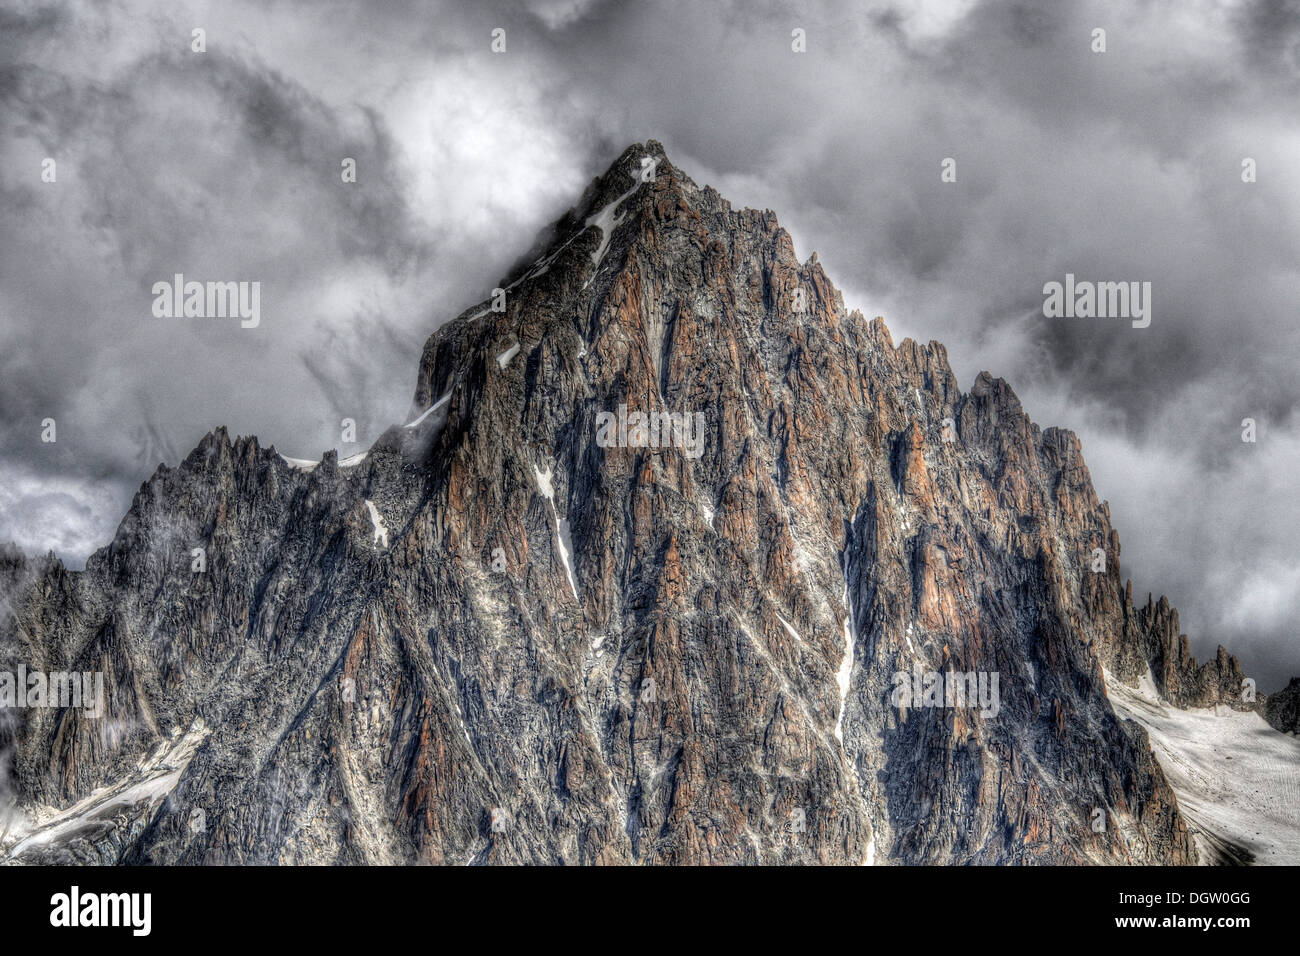 The Aiguille de Chardonnet in the French Alps, image processed HDR - Stock Image